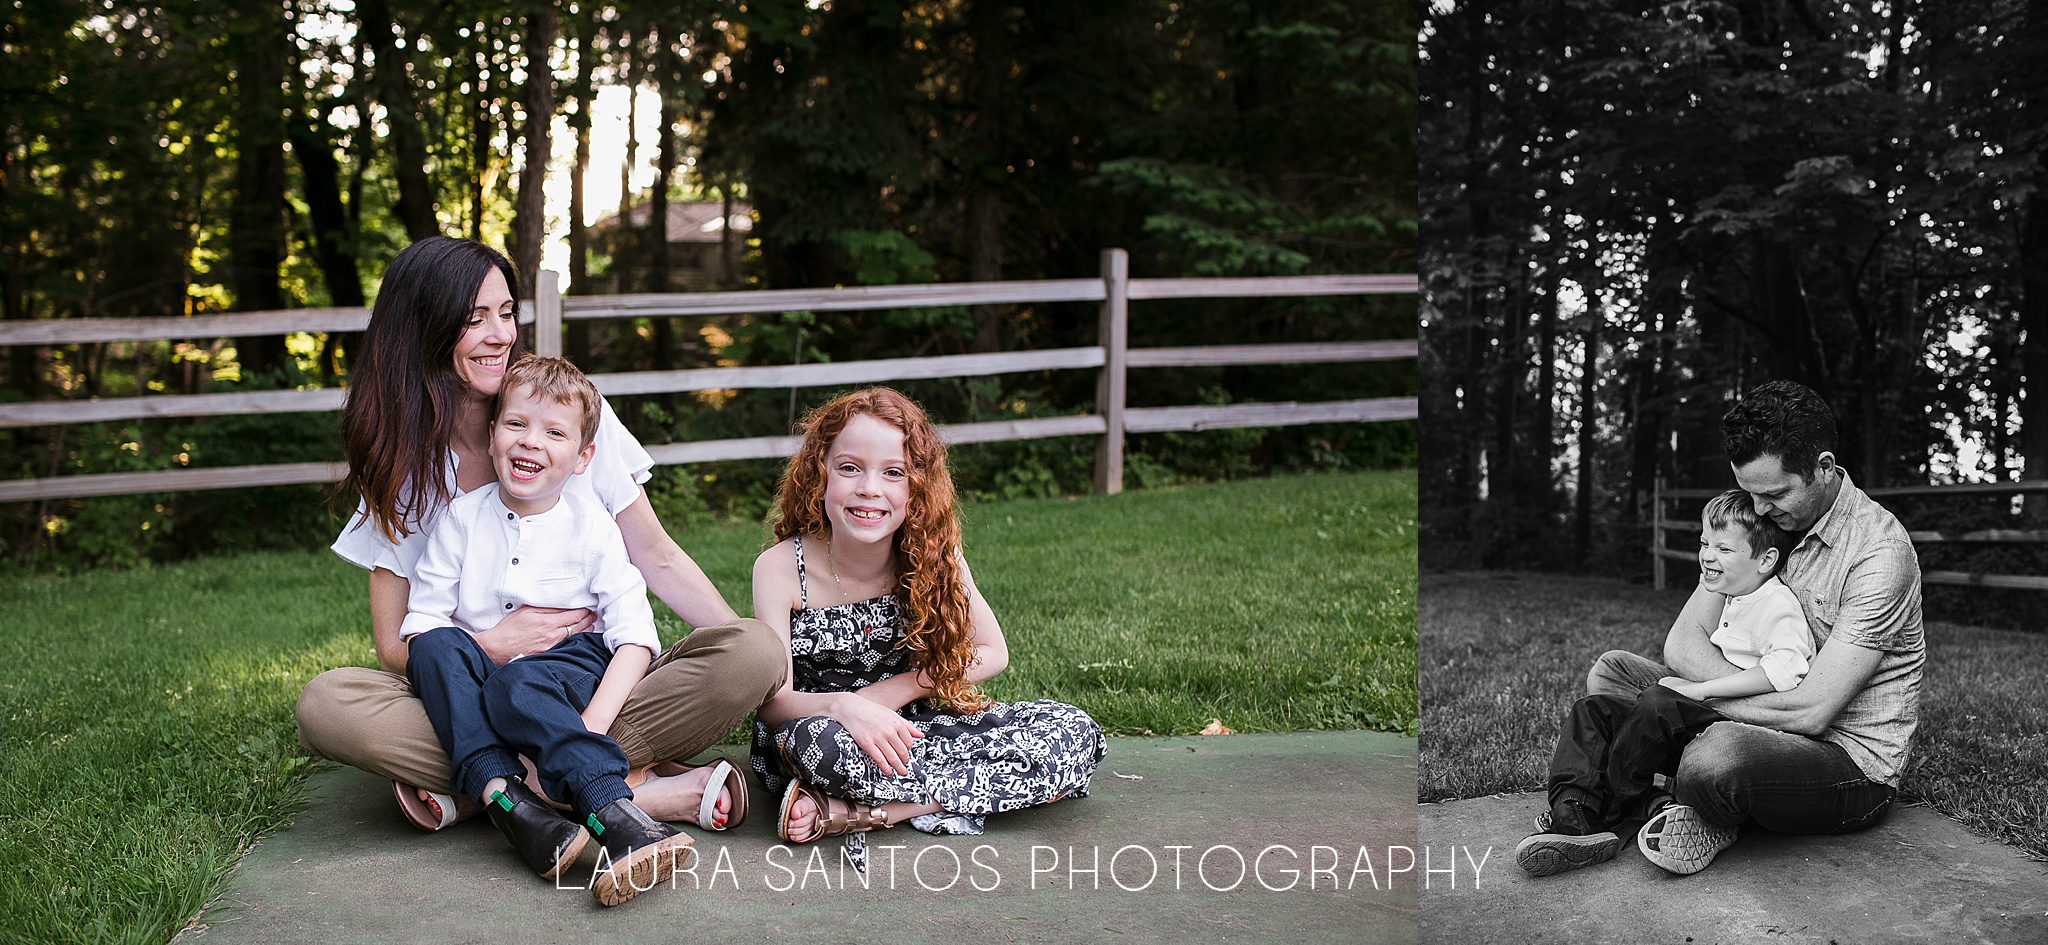 Laura Santos Photography Portland Oregon Family Photographer_0973.jpg